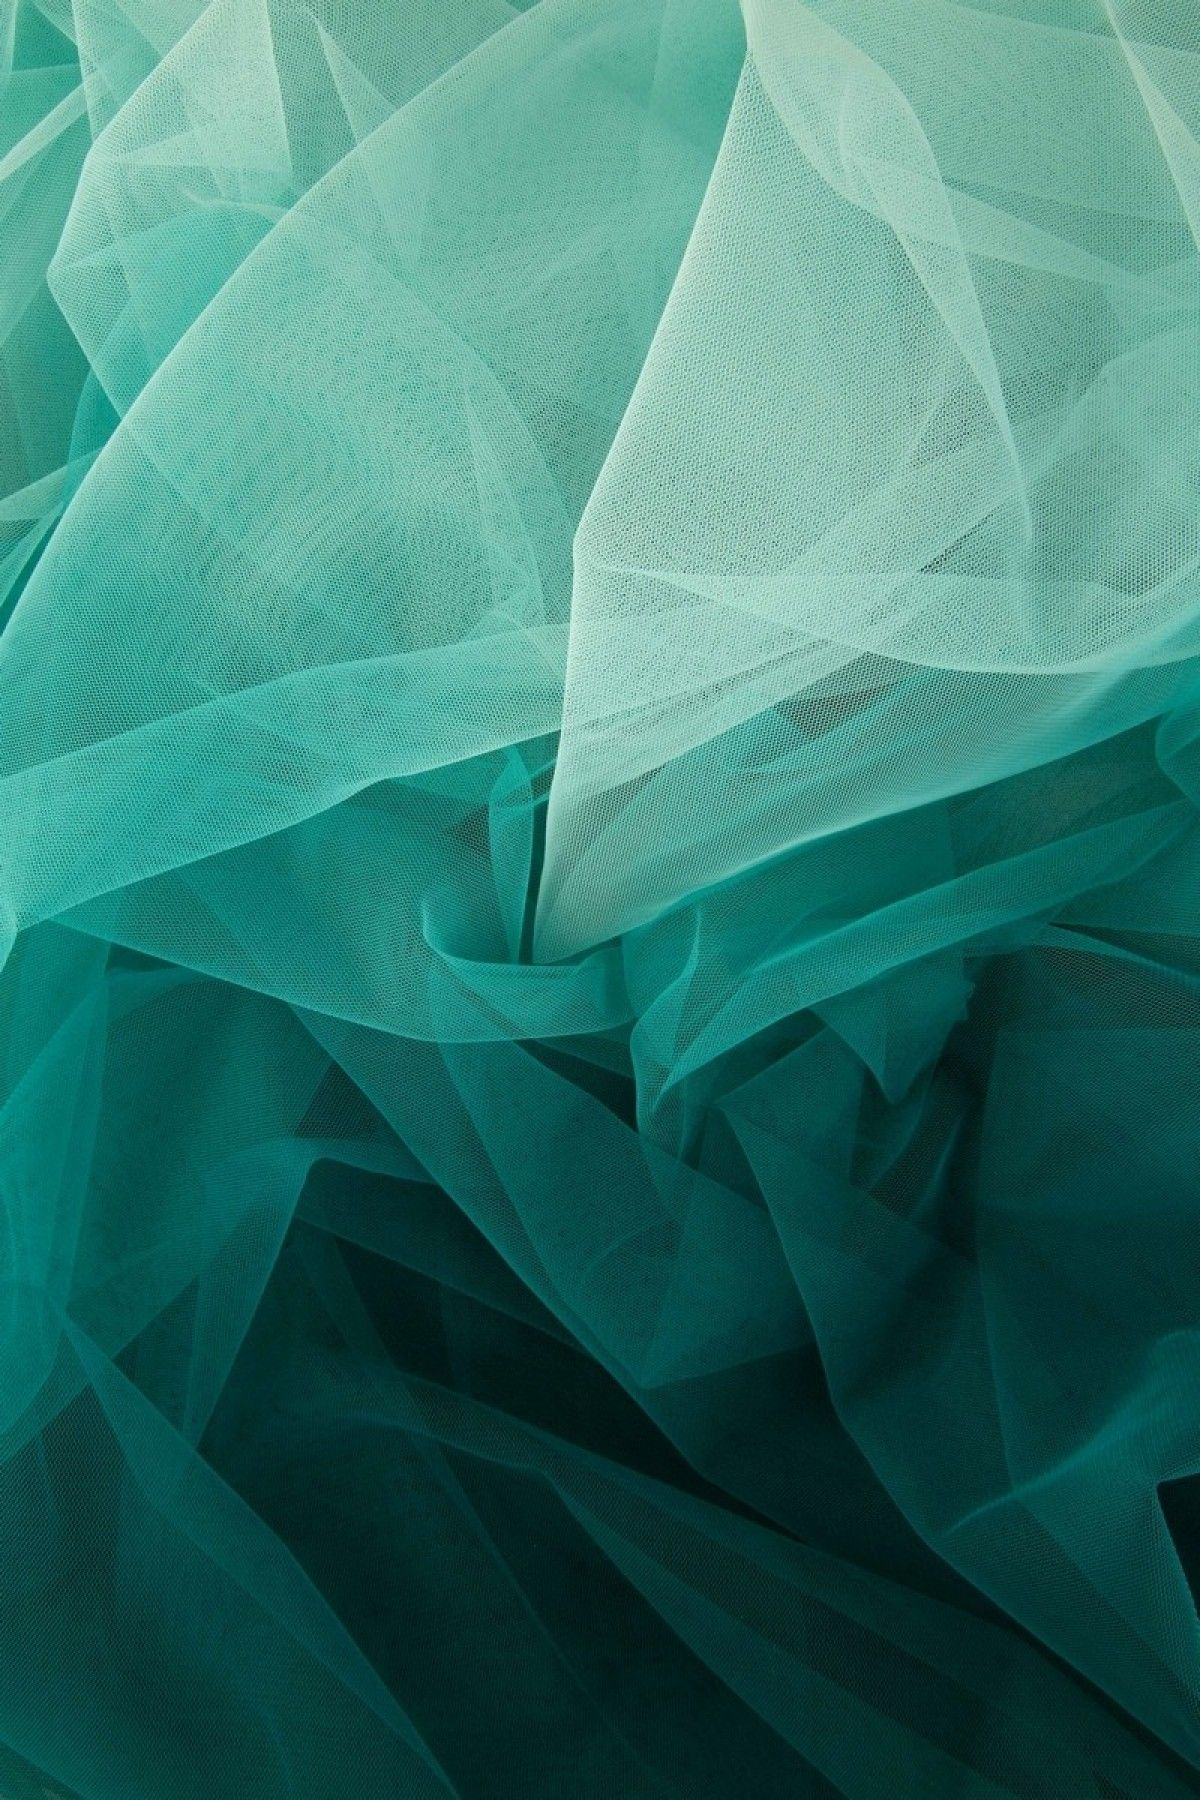 Weave medley light green fabric 6 yards contemporary drapery fabric - Sea Green Sky Blue Shaded Exclusive Pure Net Fabric With Price Online Samyakk